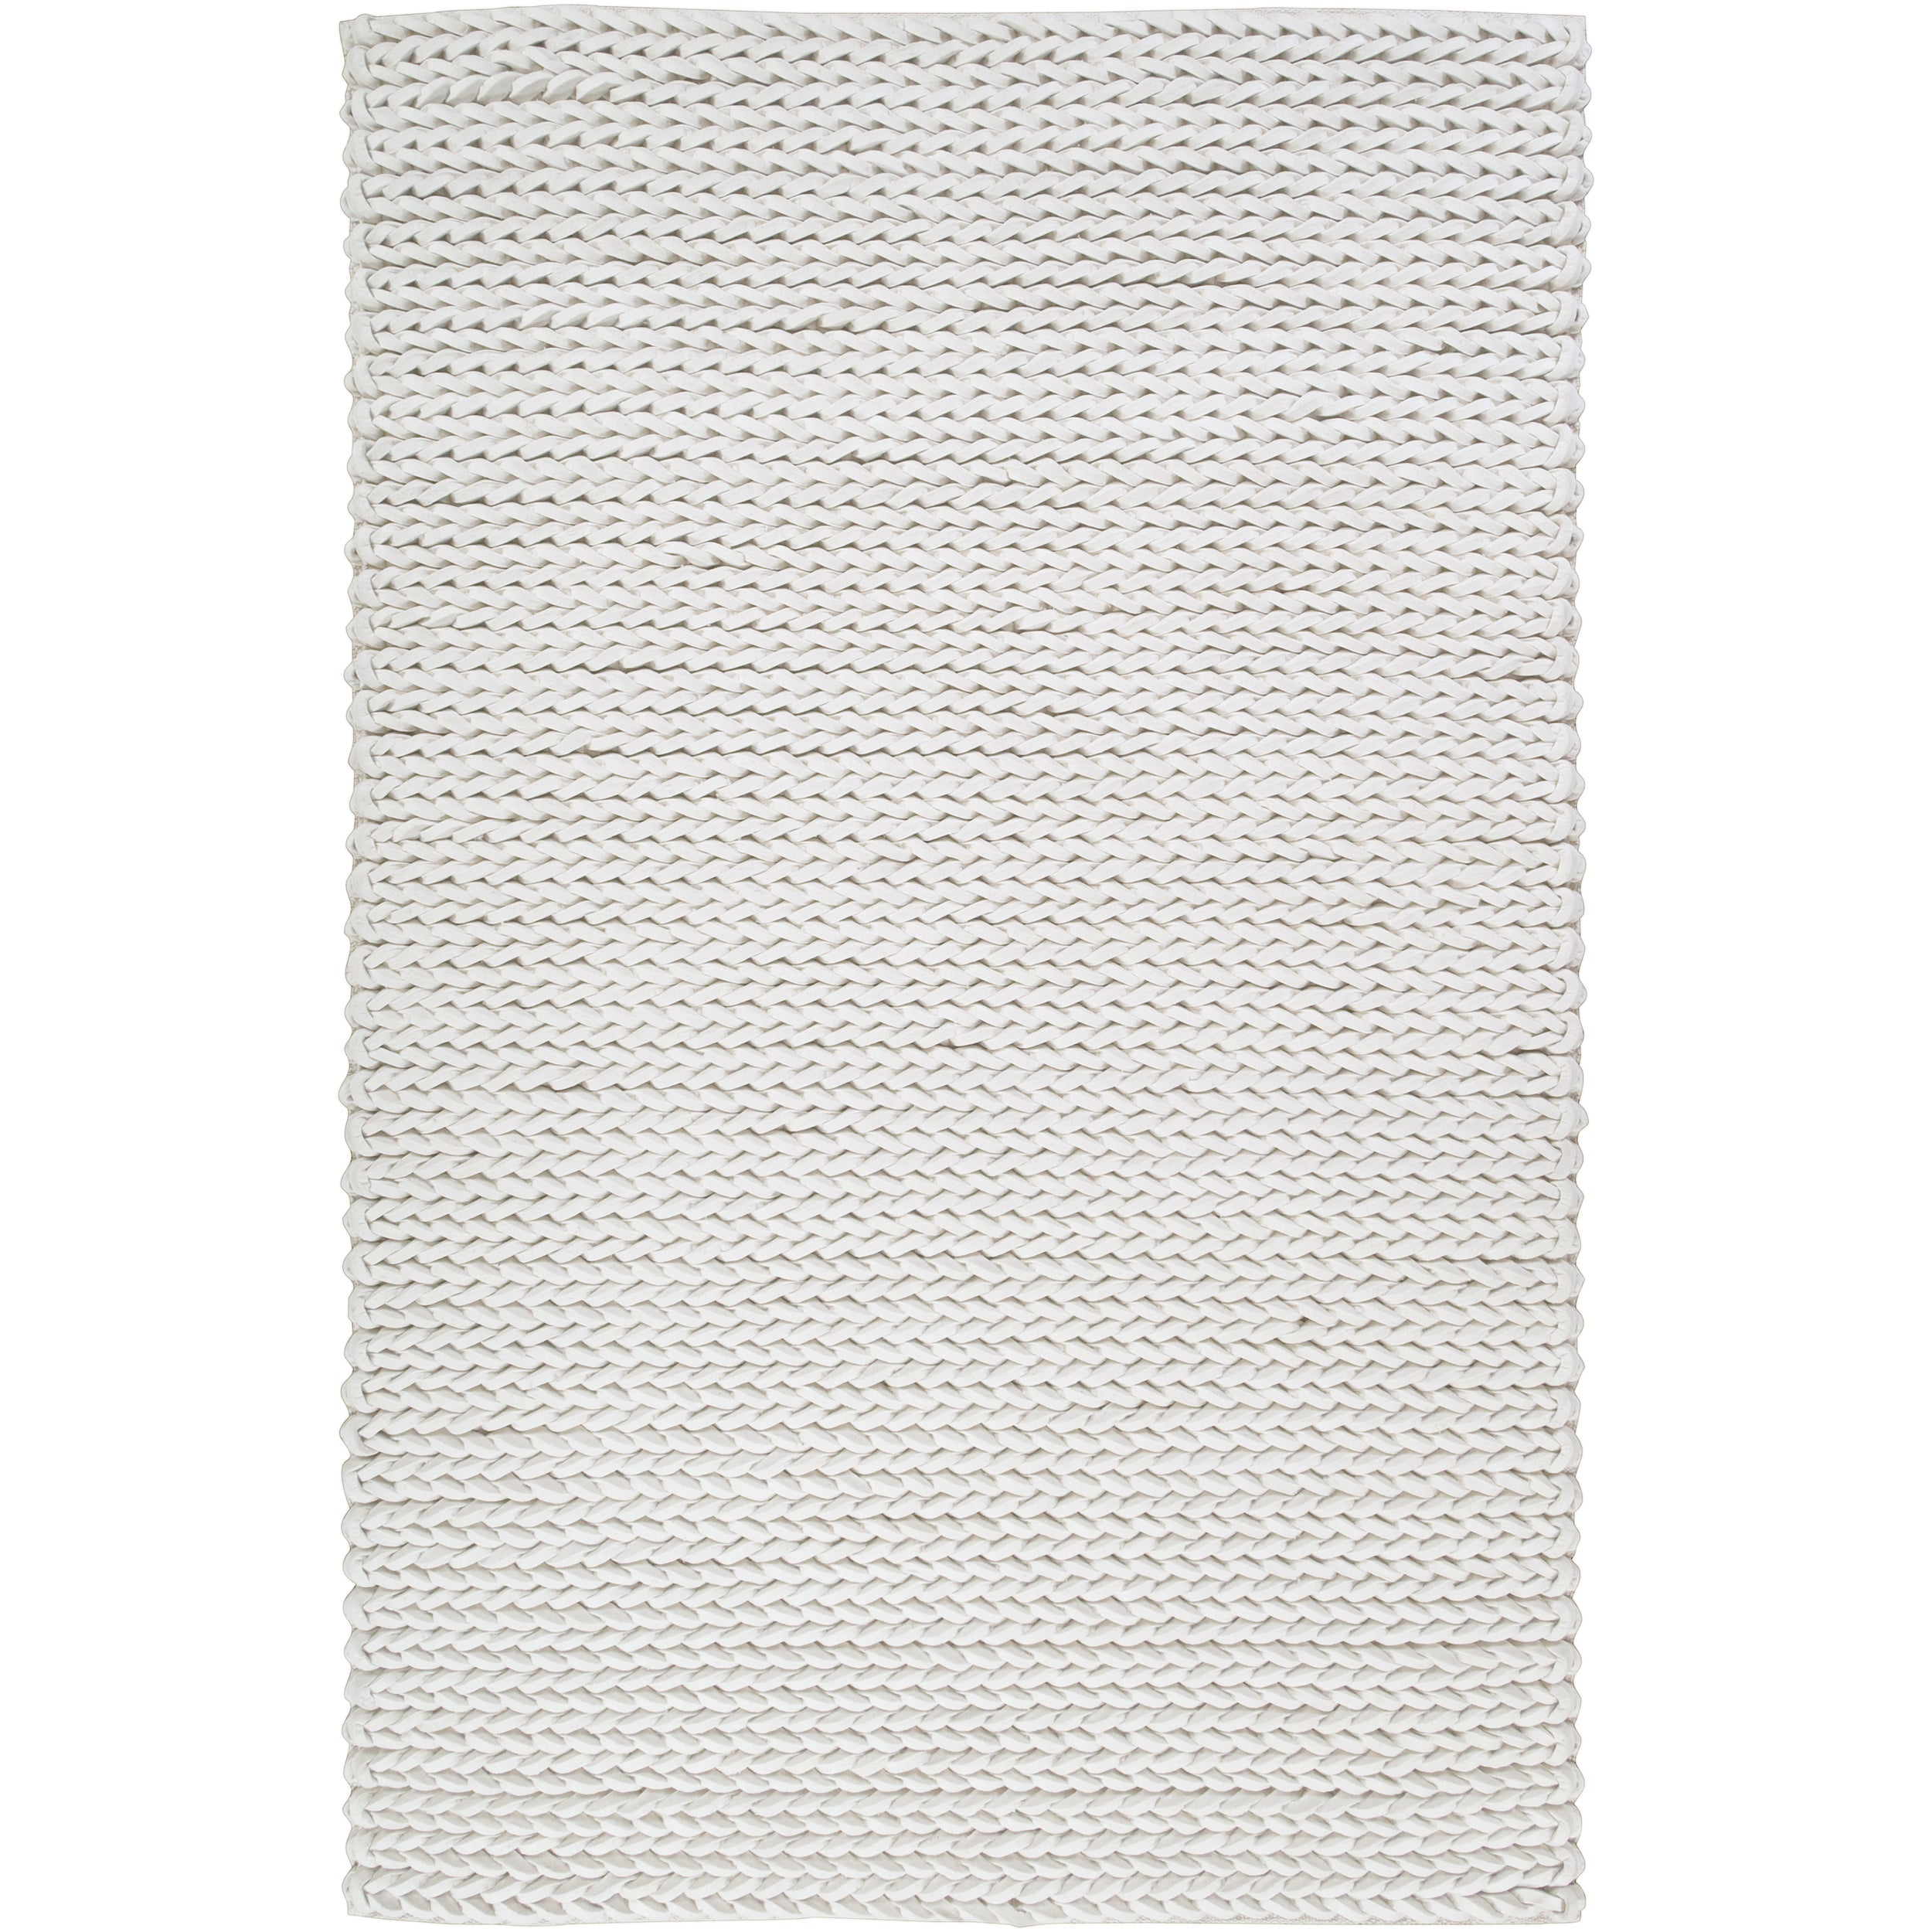 Hand-woven Ivory Badollet Braided Texture New Zealand Wool Rug (8' x 11')